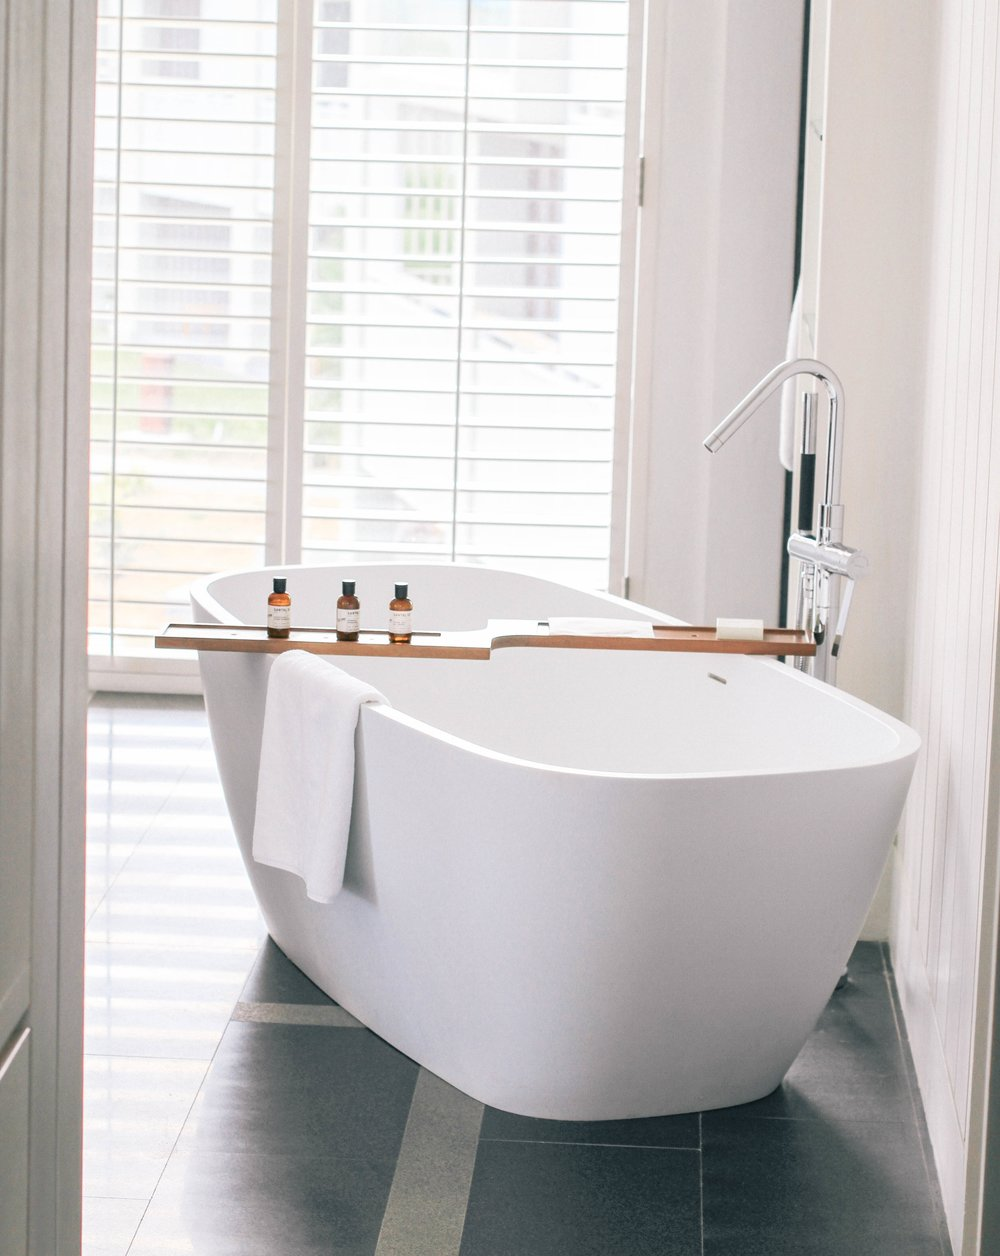 This tub fits 2 people comfortable! #TubGoals